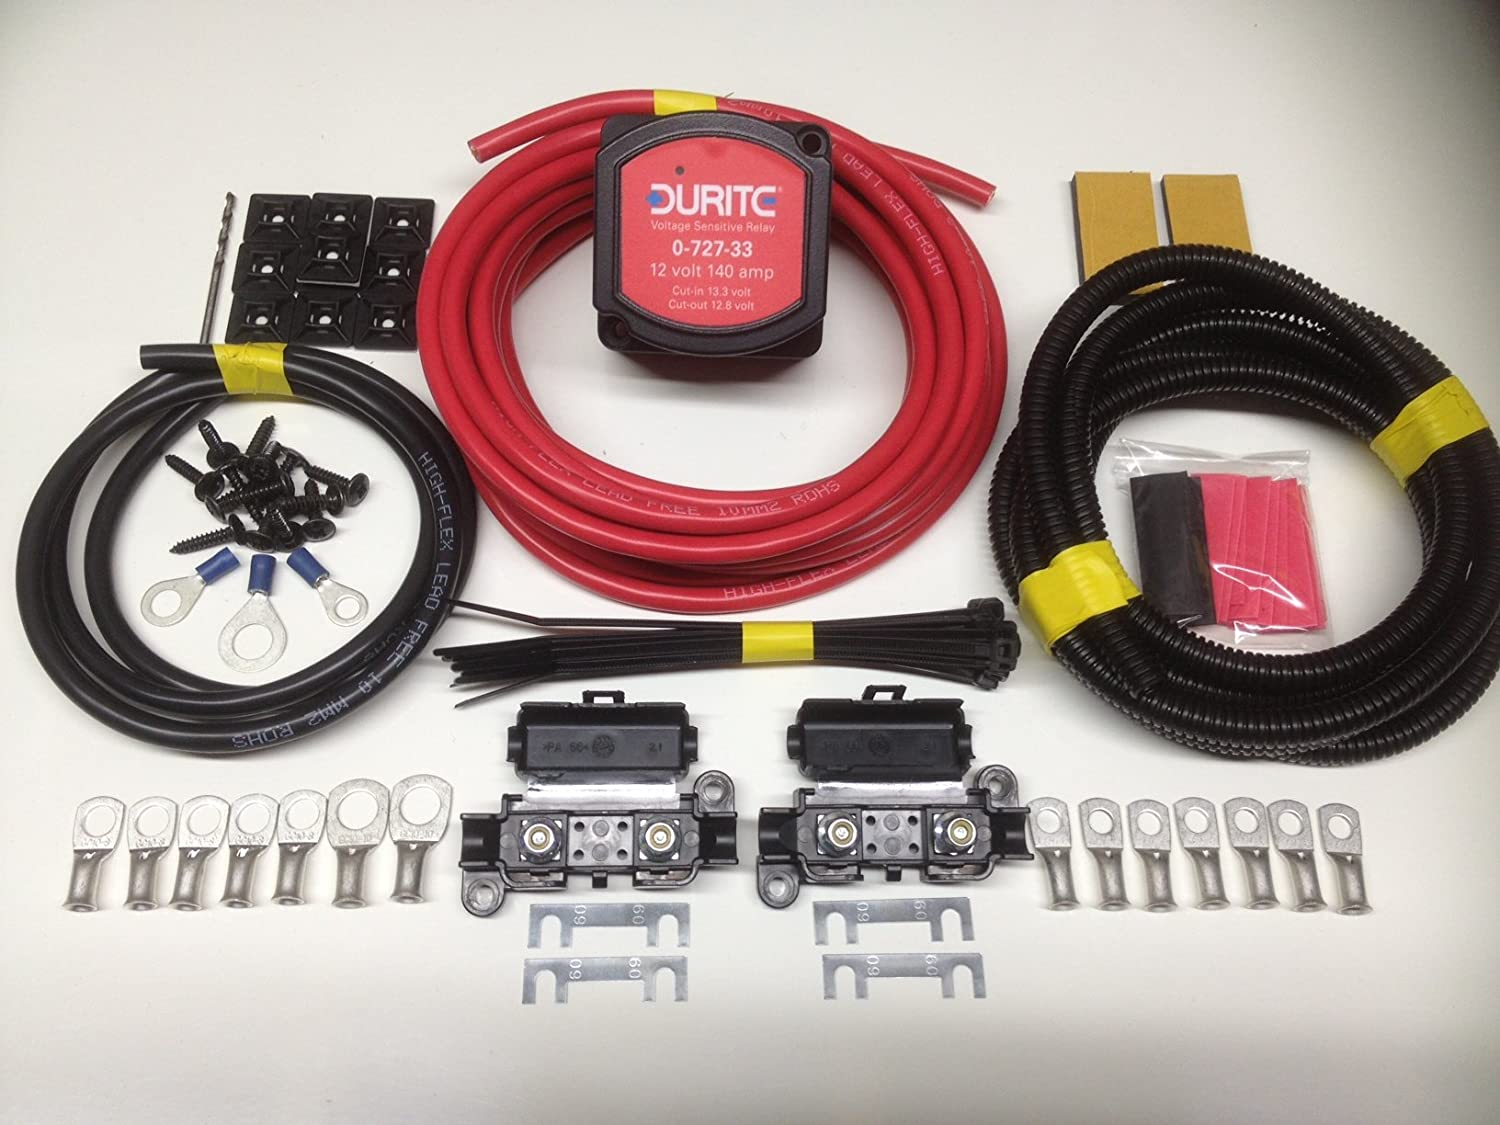 5mtr Split Charge Relay kit with Cargo 12V 140amp Voltage sense Relay /& 110amp Ready Made Leads SCKC305